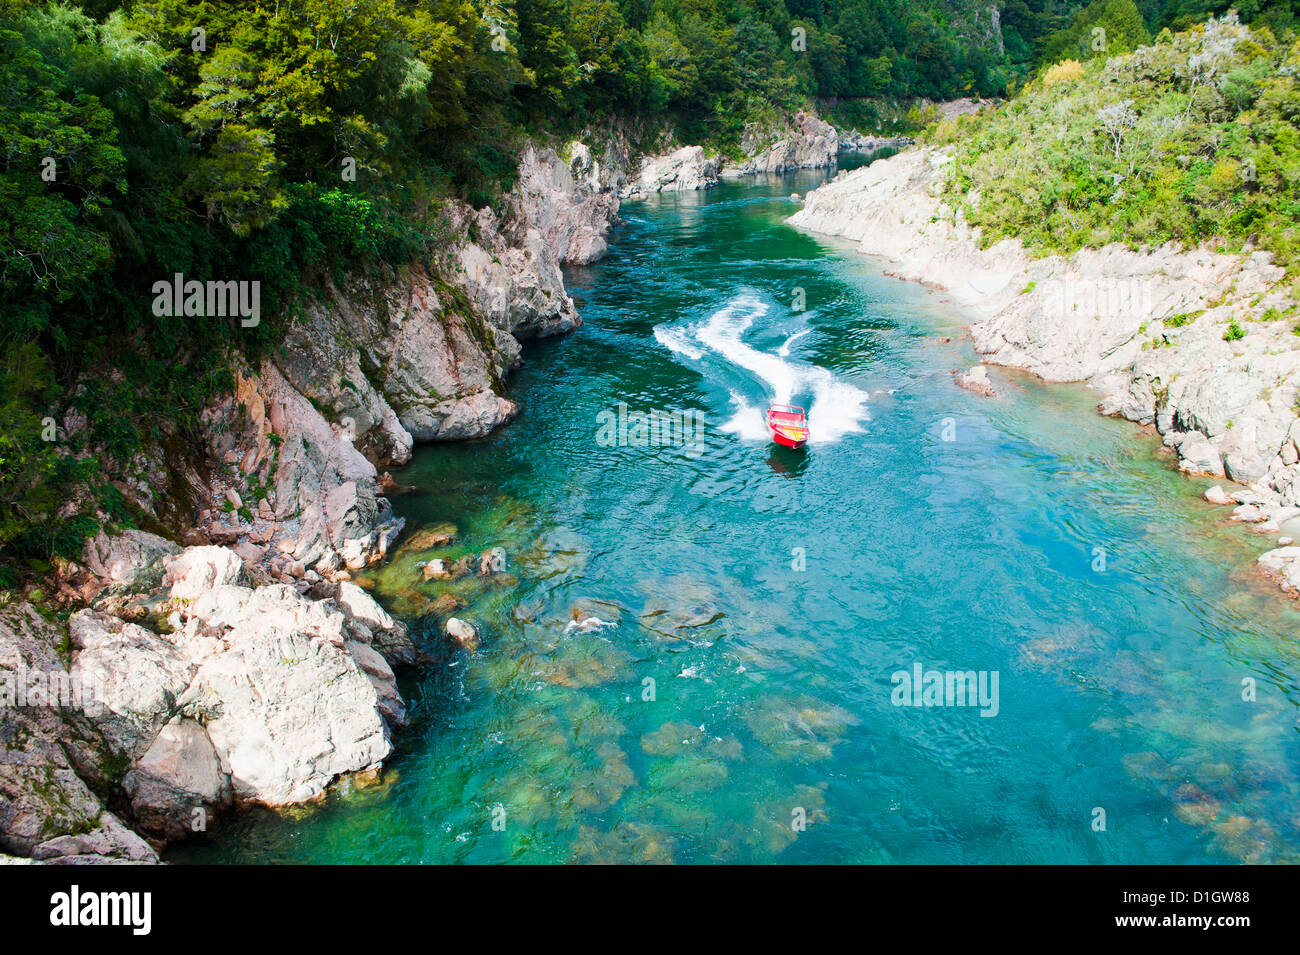 Jetboating on the Buller River at Buller Gorge Swingbridge, South Island, New Zealand, Pacific - Stock Image